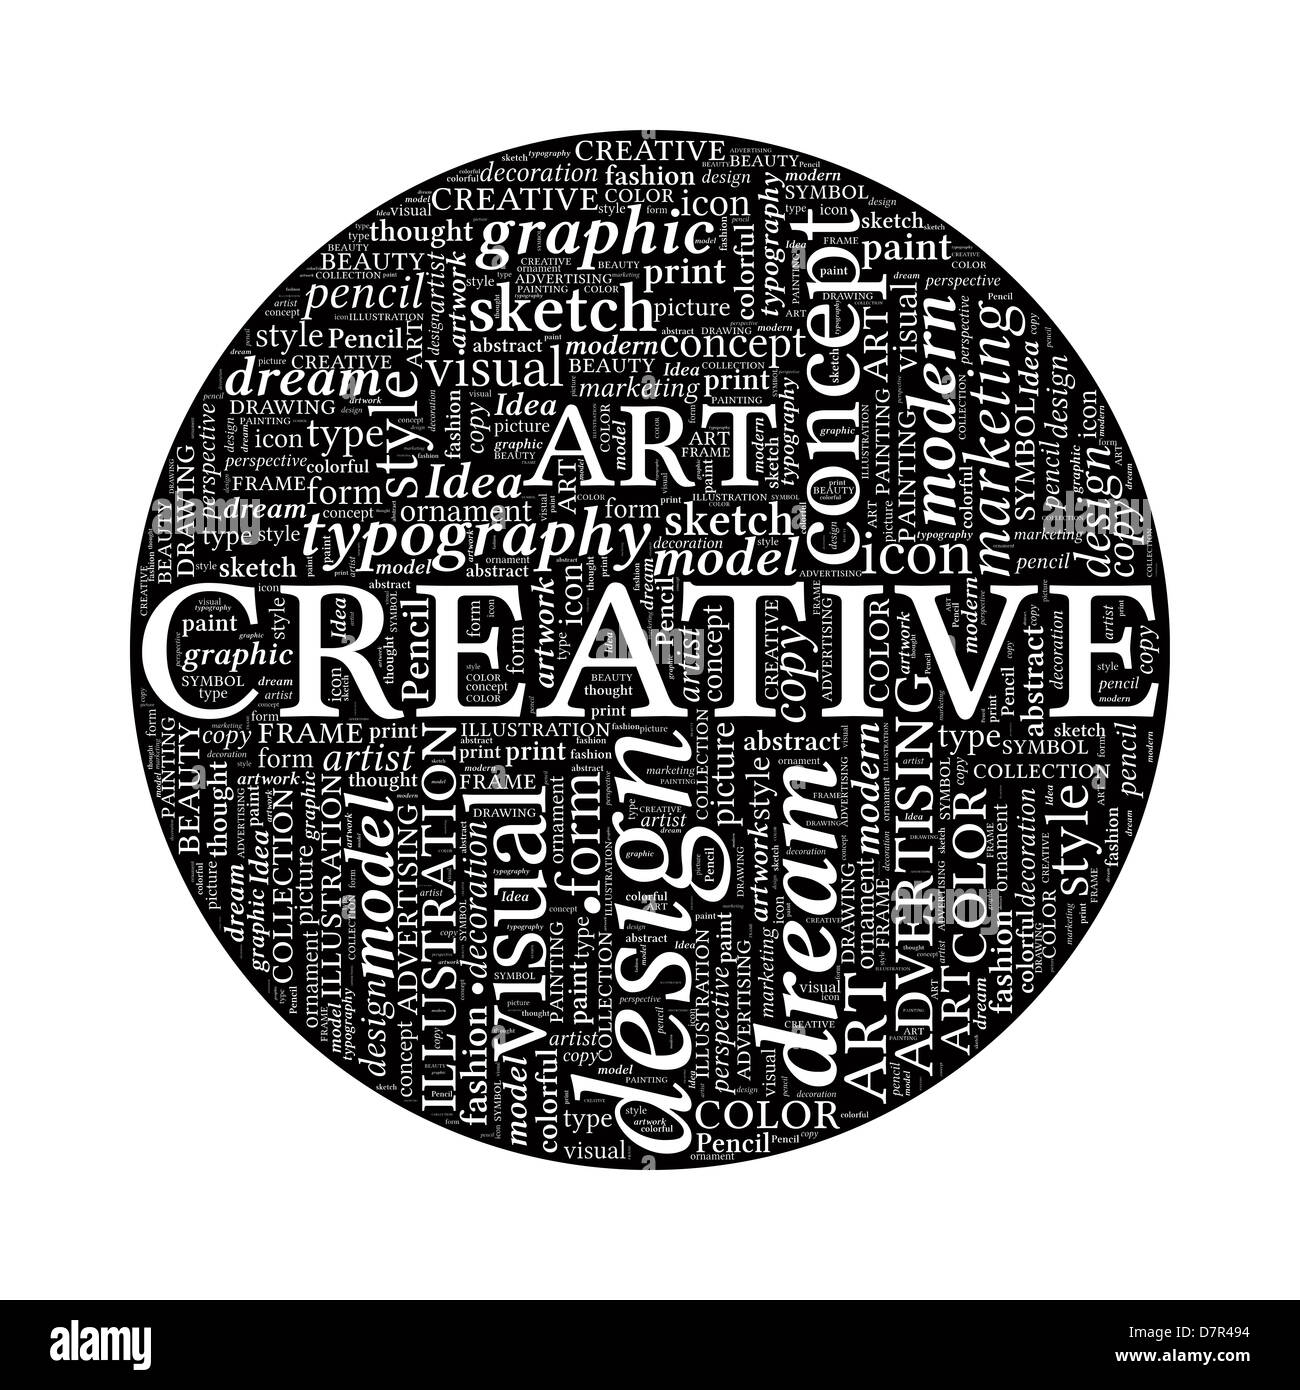 Creative Design Concept Black And White Word Cloud In